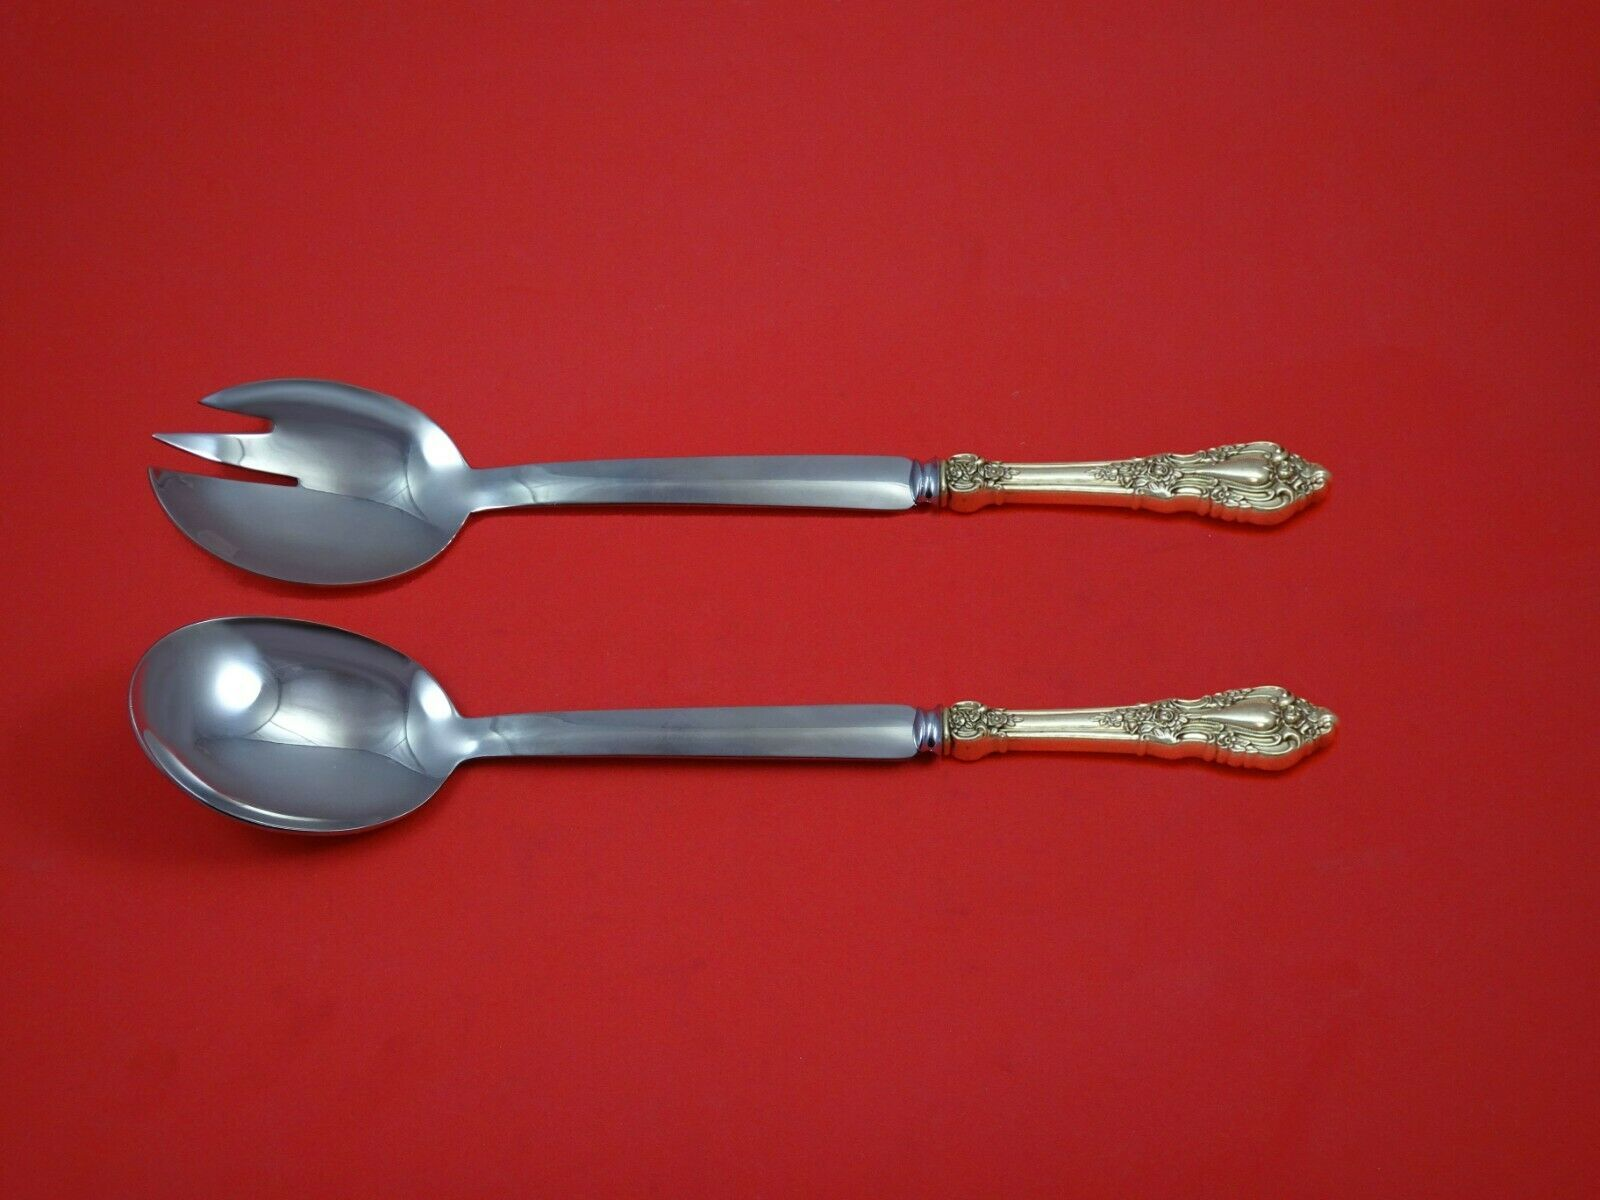 Primary image for Eloquence by Lunt Sterling Silver Salad Serving Set Modern 2pc Custom 10 1/2""